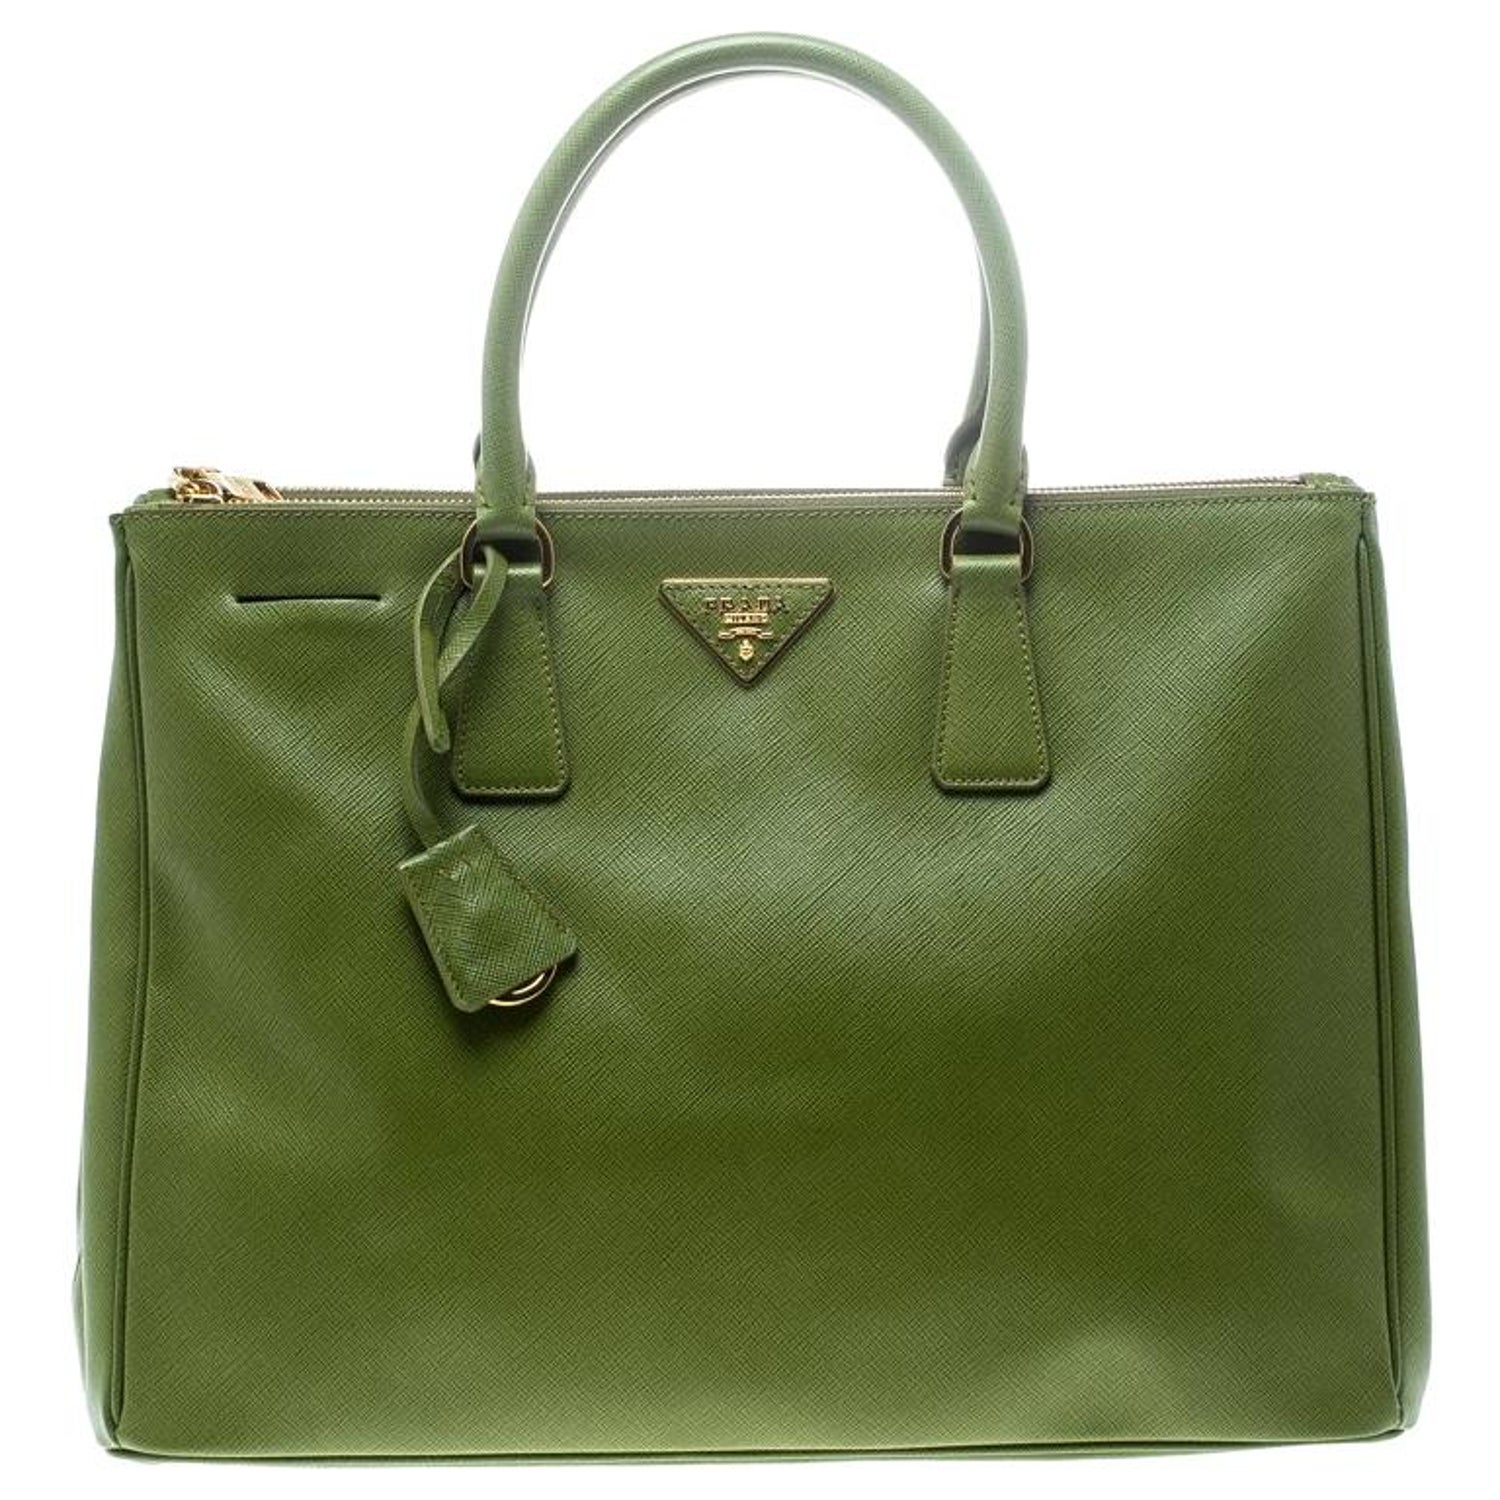 339ad60d117c Prada Green Saffiano Lux Leather Large Double Zip Tote For Sale at 1stdibs